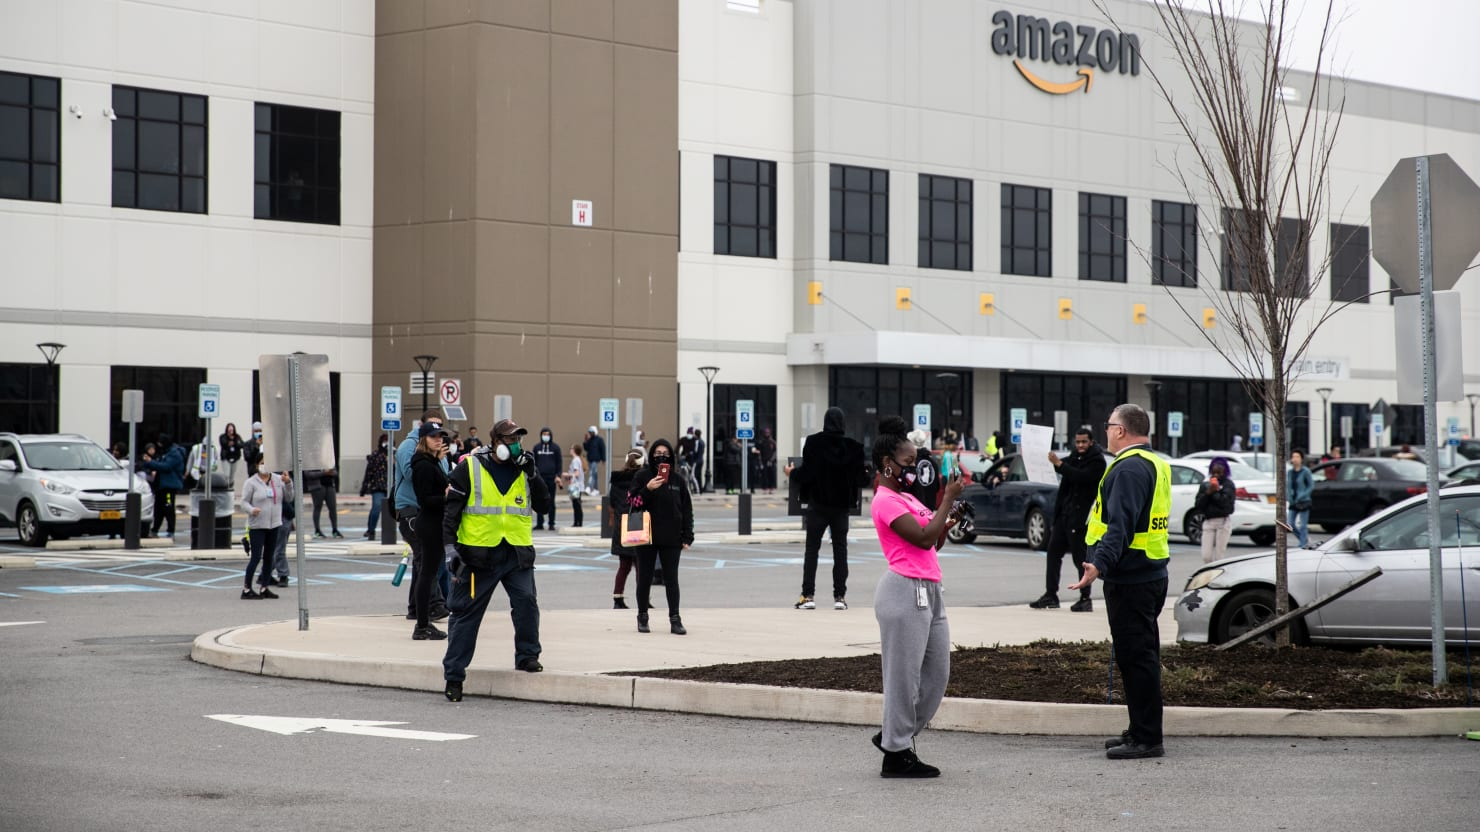 Worker: Amazon Fired Me for Leading Strike at NYC Warehouse Over Coronavirus